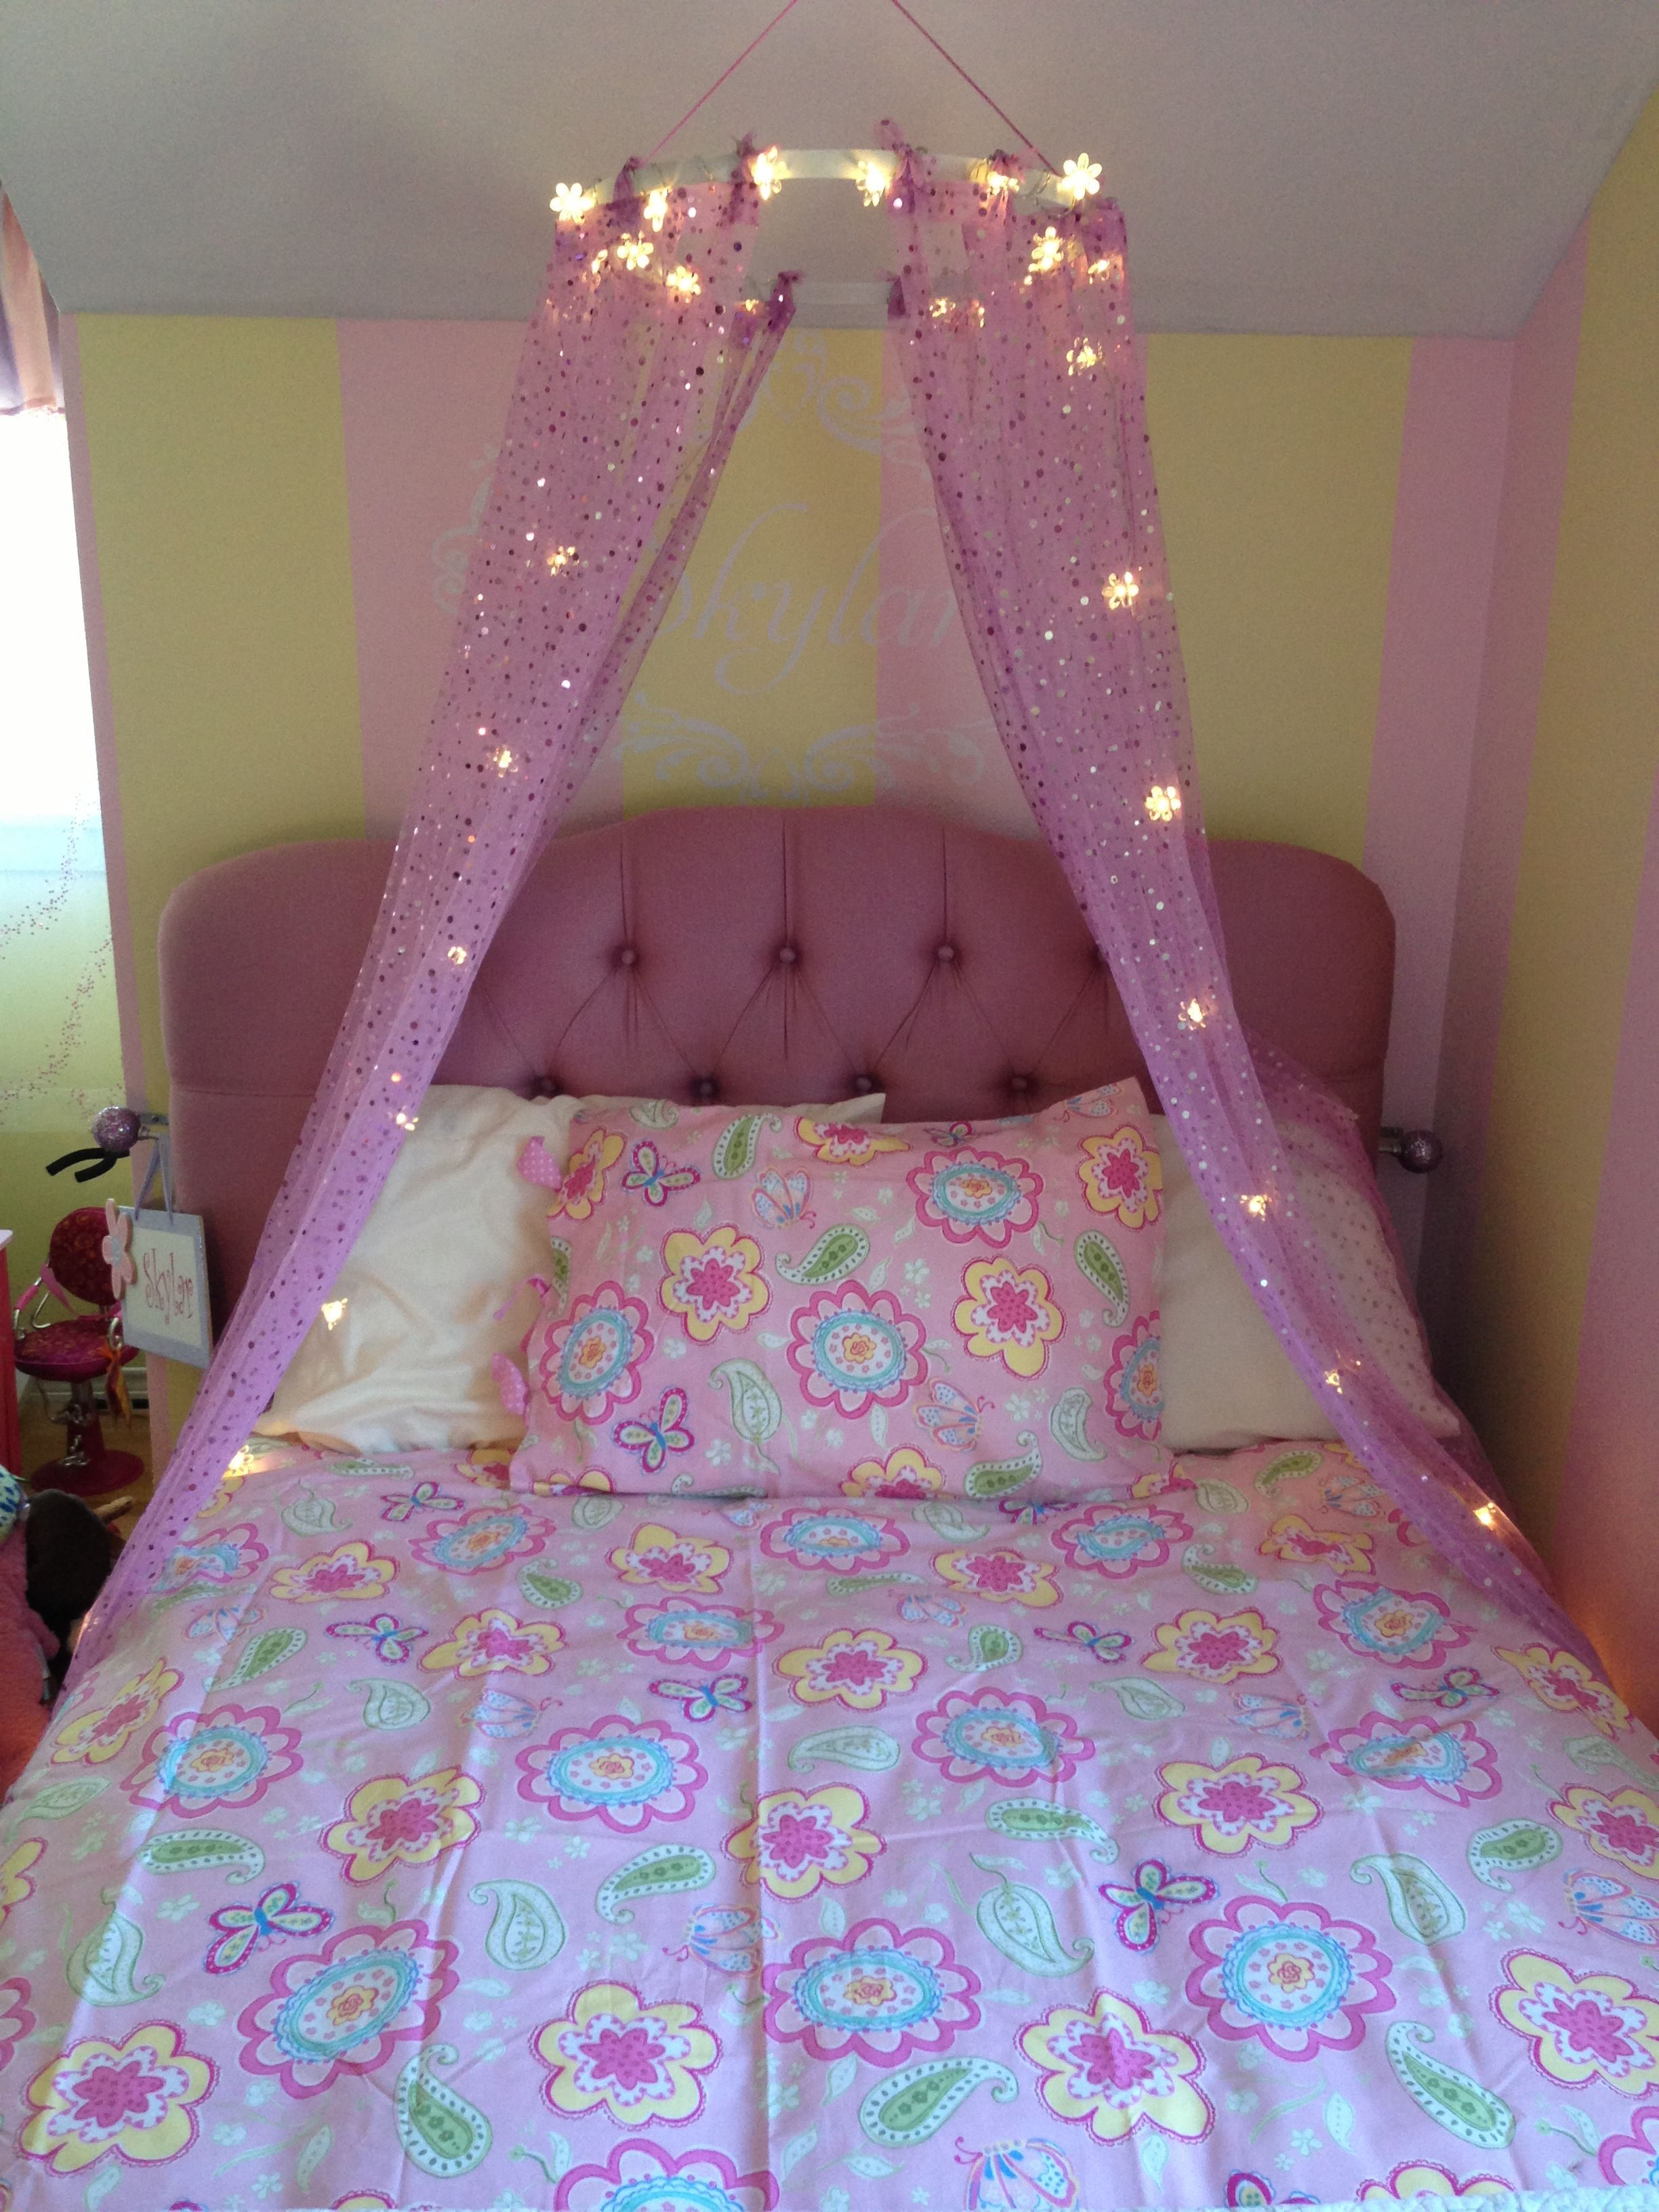 How to make a bed canopy for girls - Little Girl S Bed Diy Canopy